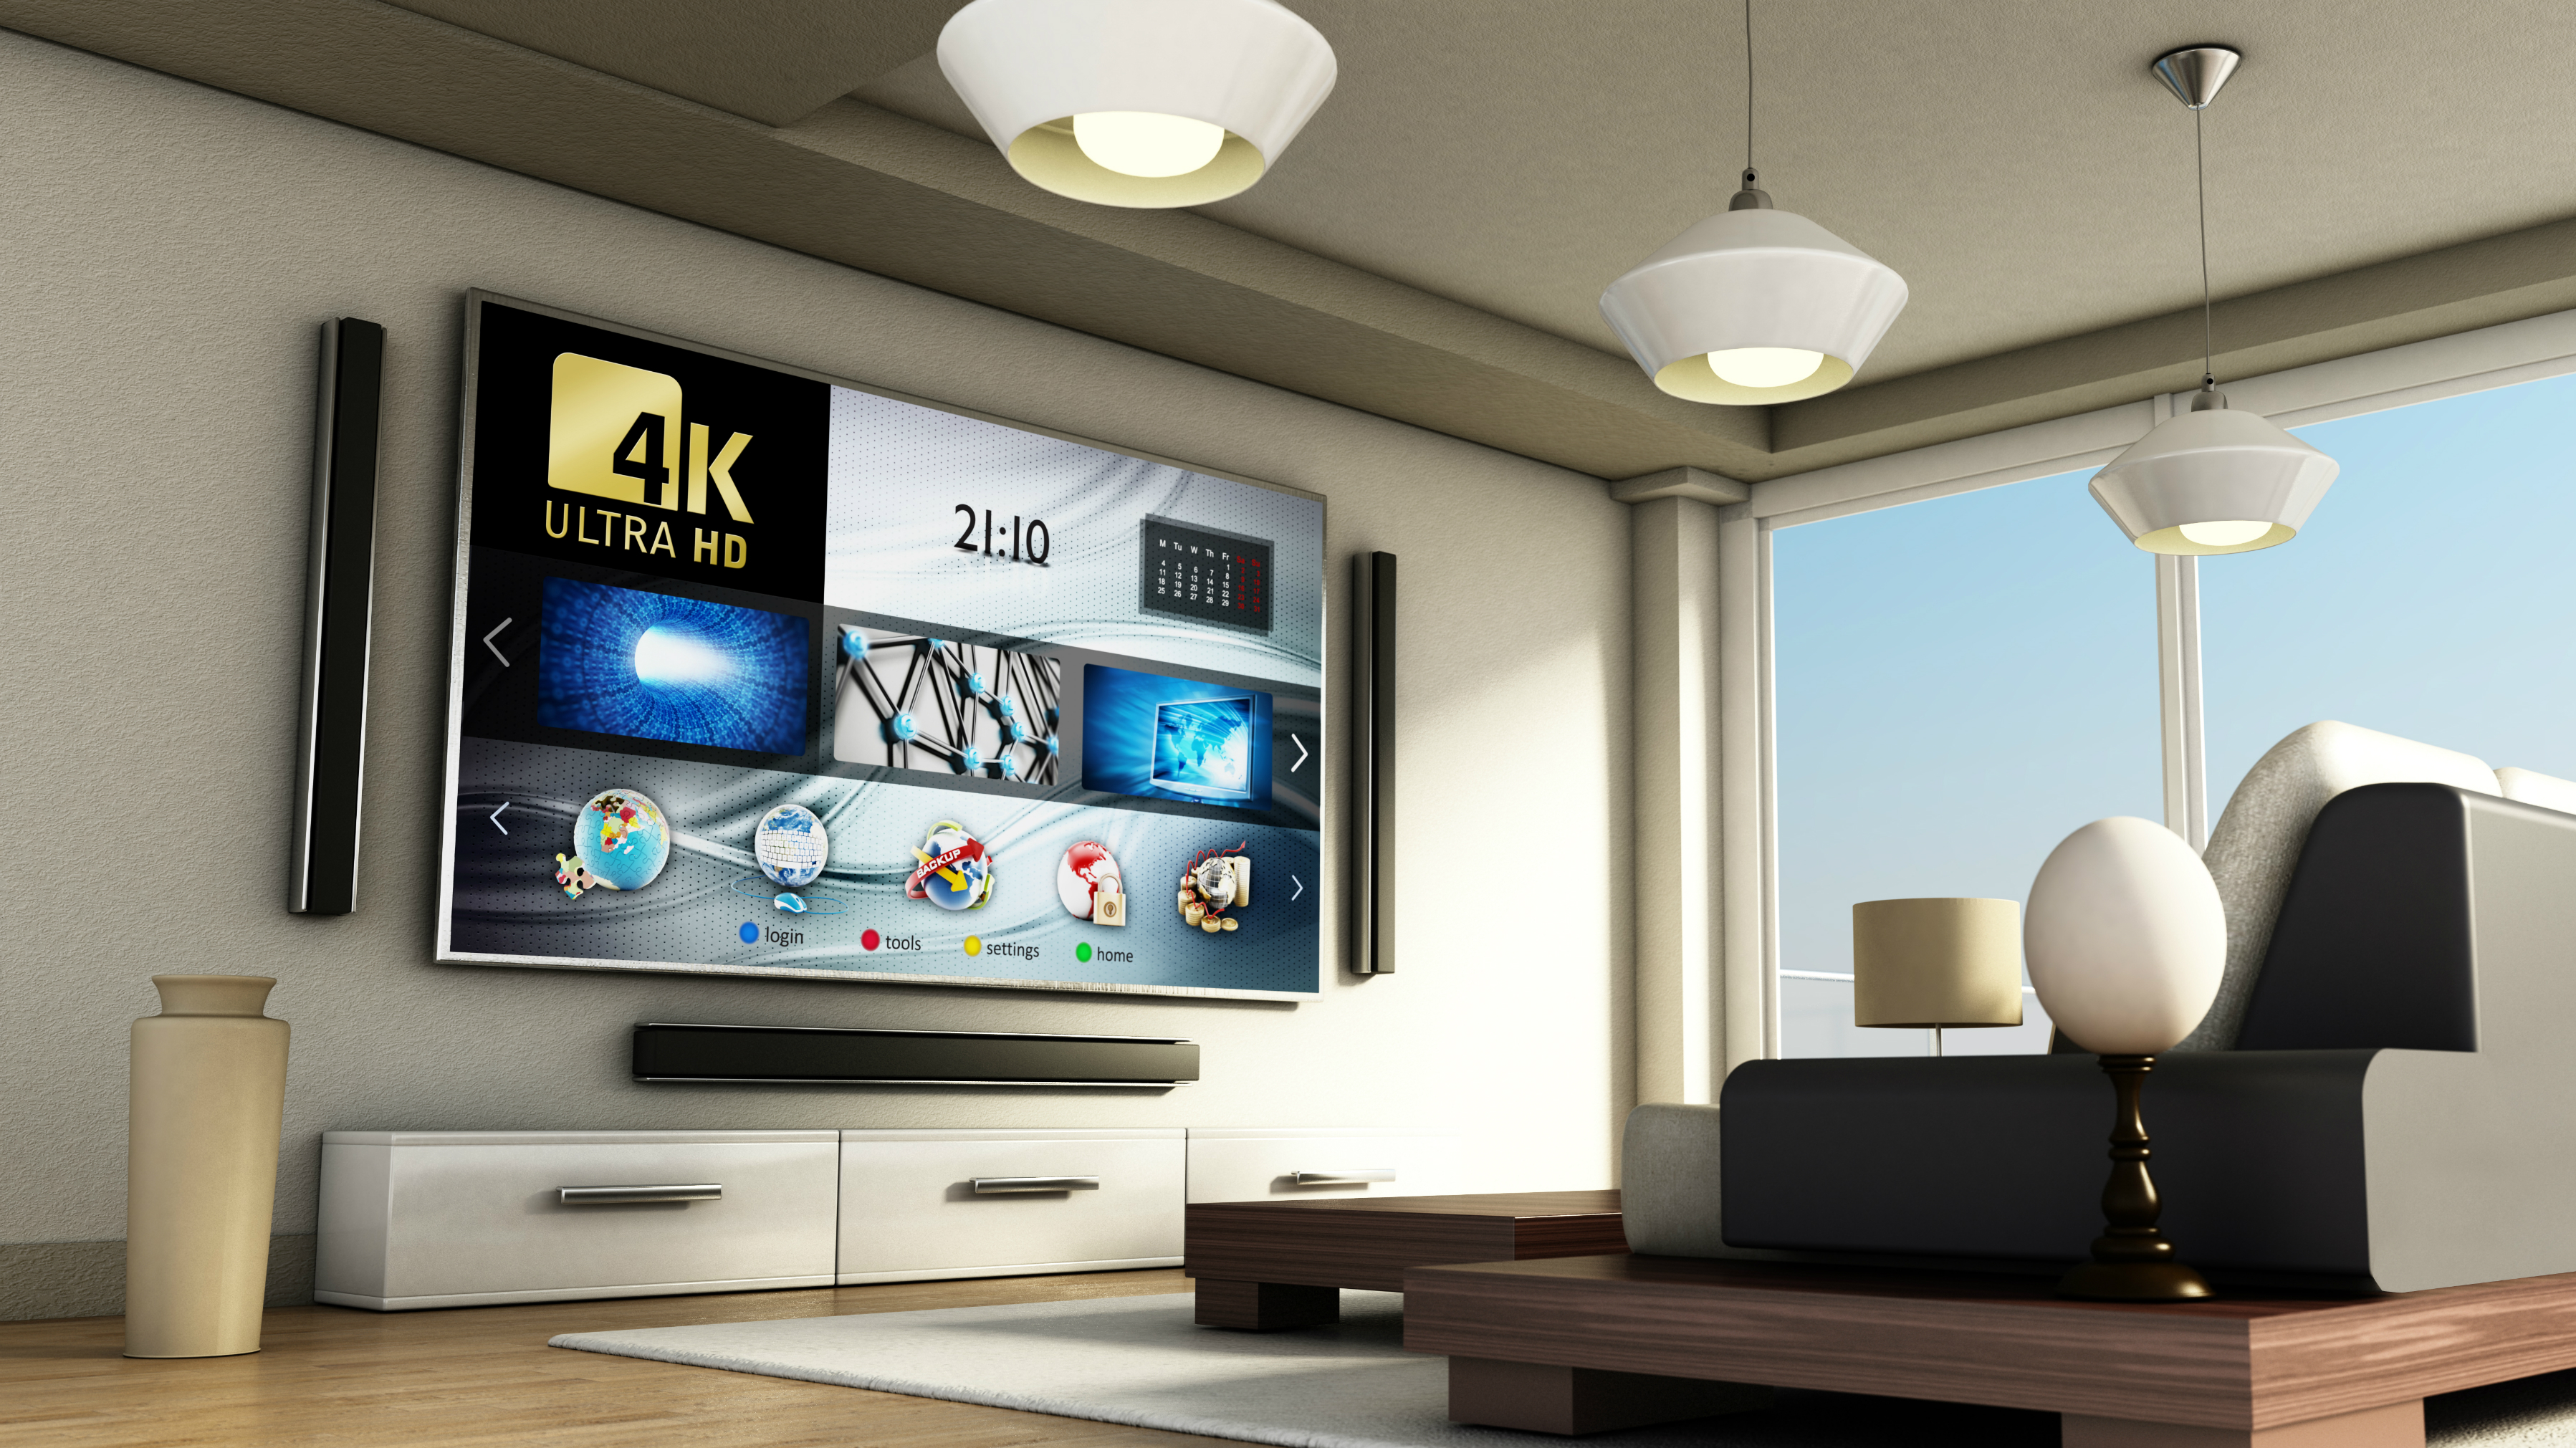 How To Maximize Your Living Room For A 4k Tv And Home Cinema Techradar